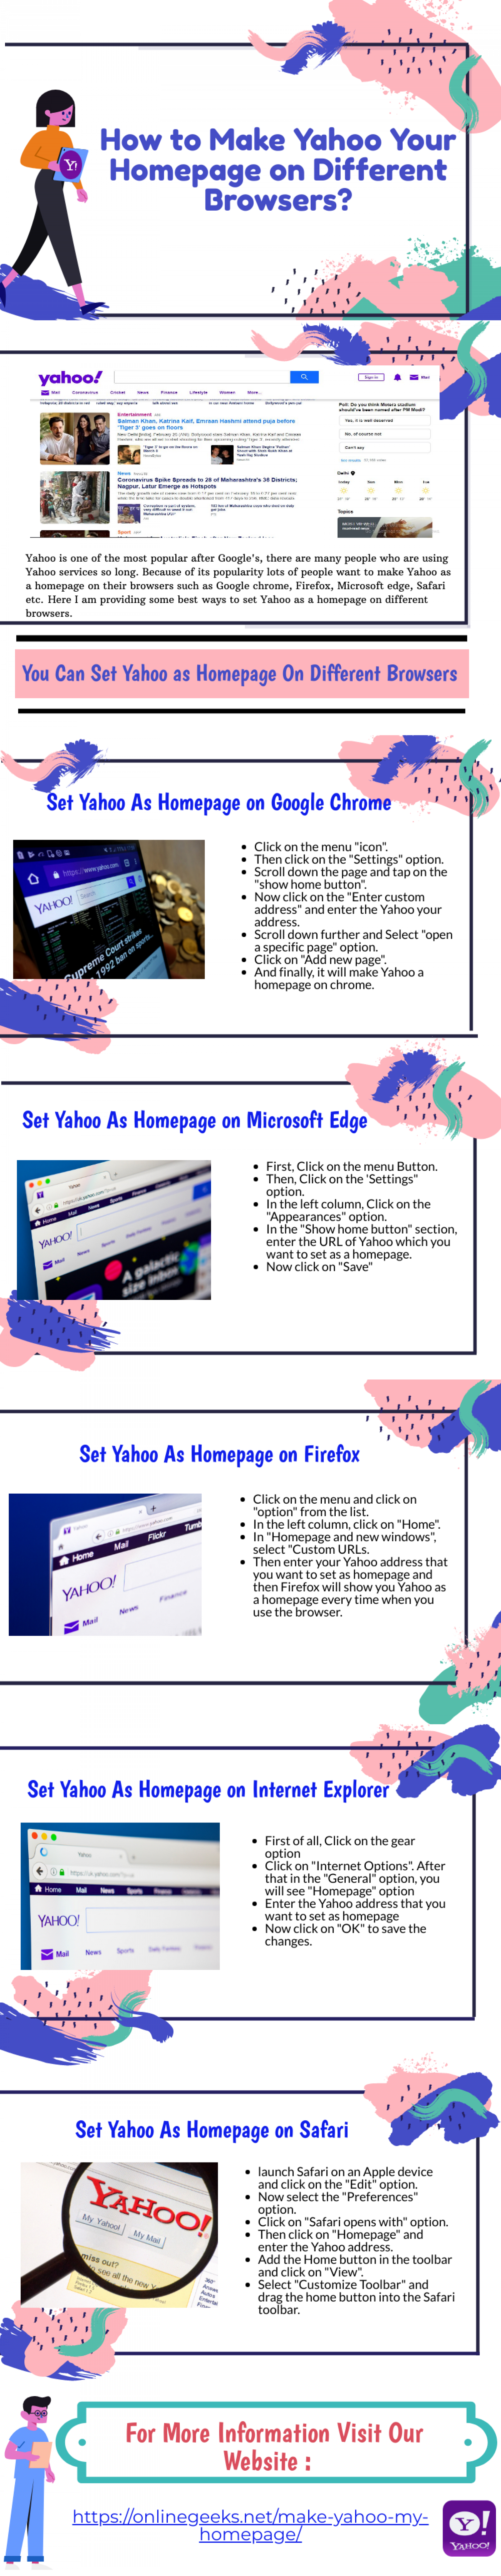 How to Make Yahoo Your Homepage on Multiple Browsers? Infographic